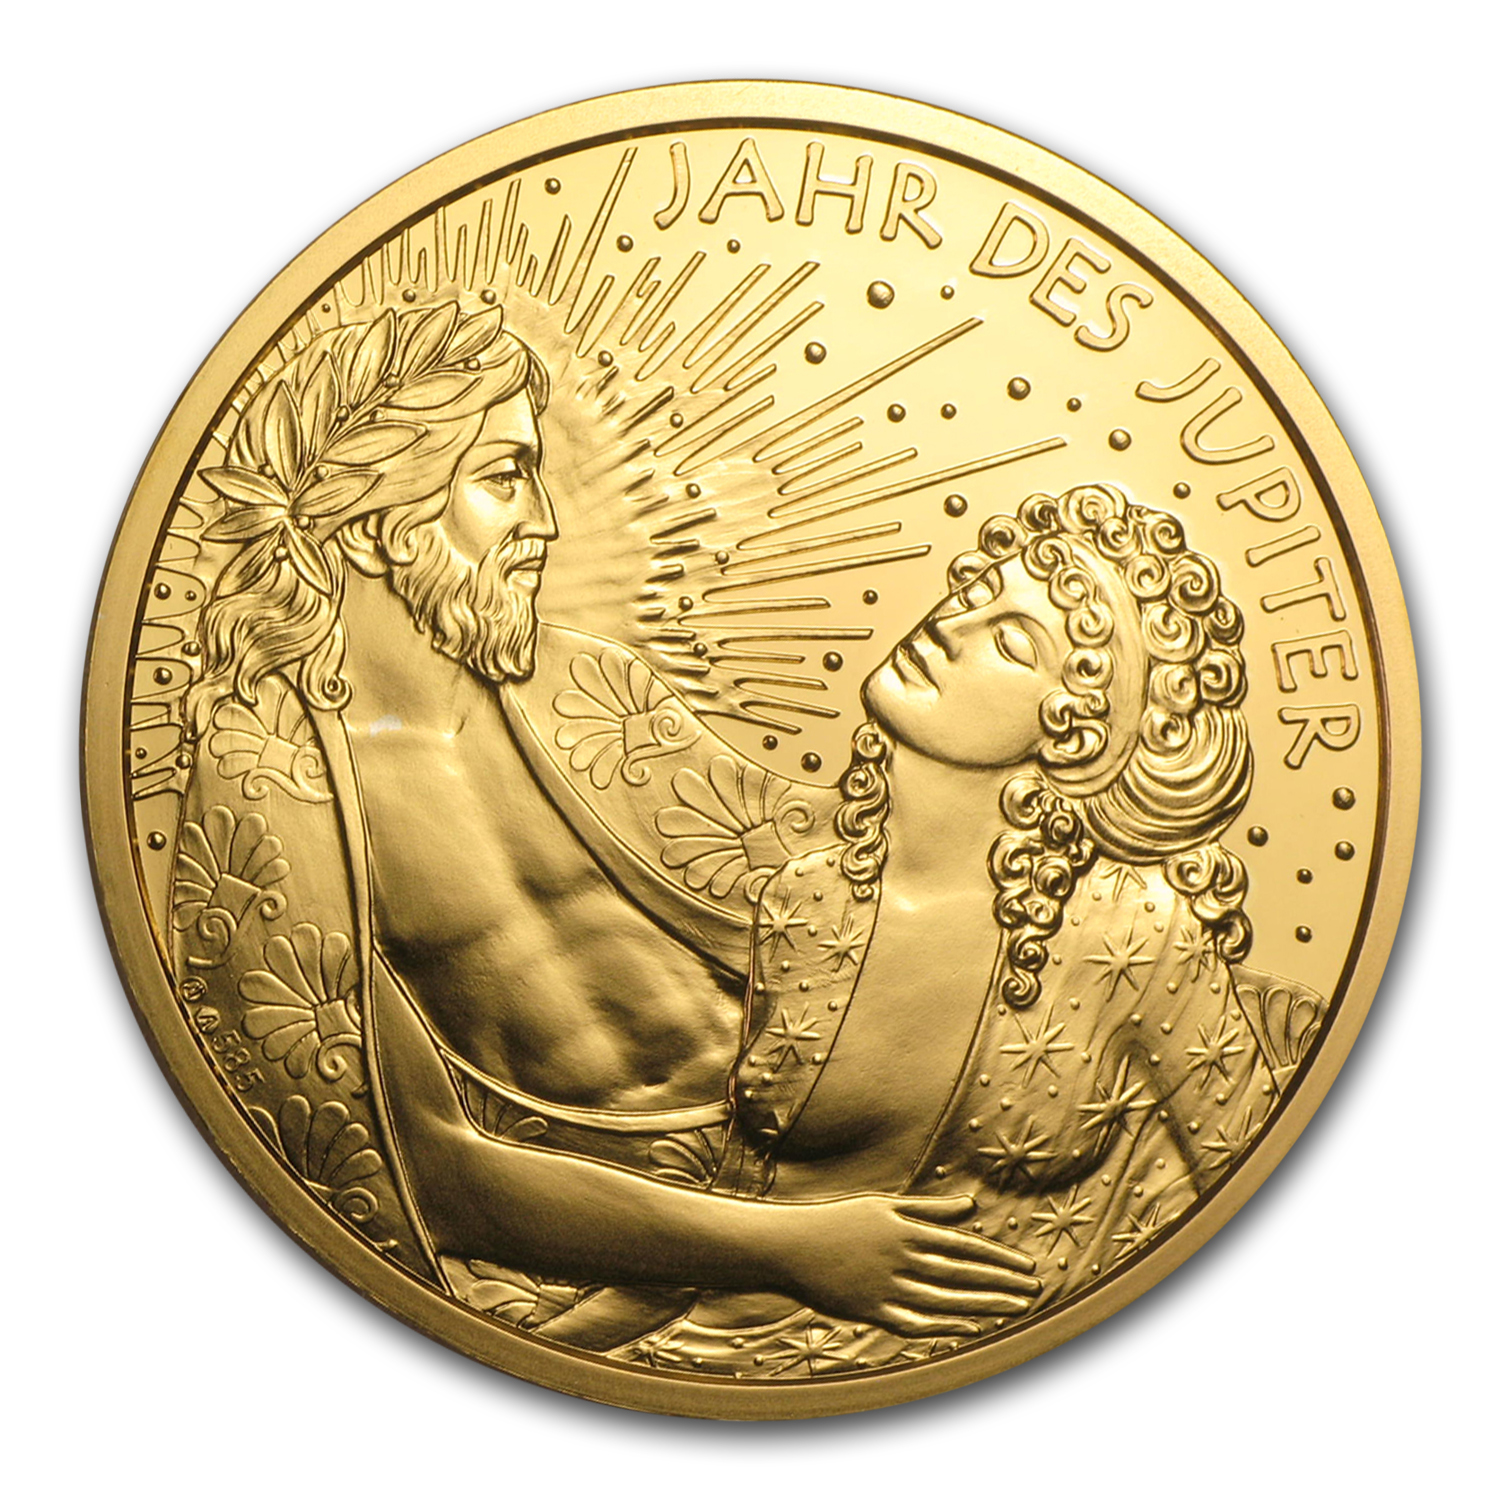 2015 Austria Gold Golden Age of Jupiter (Kalendermedaille)